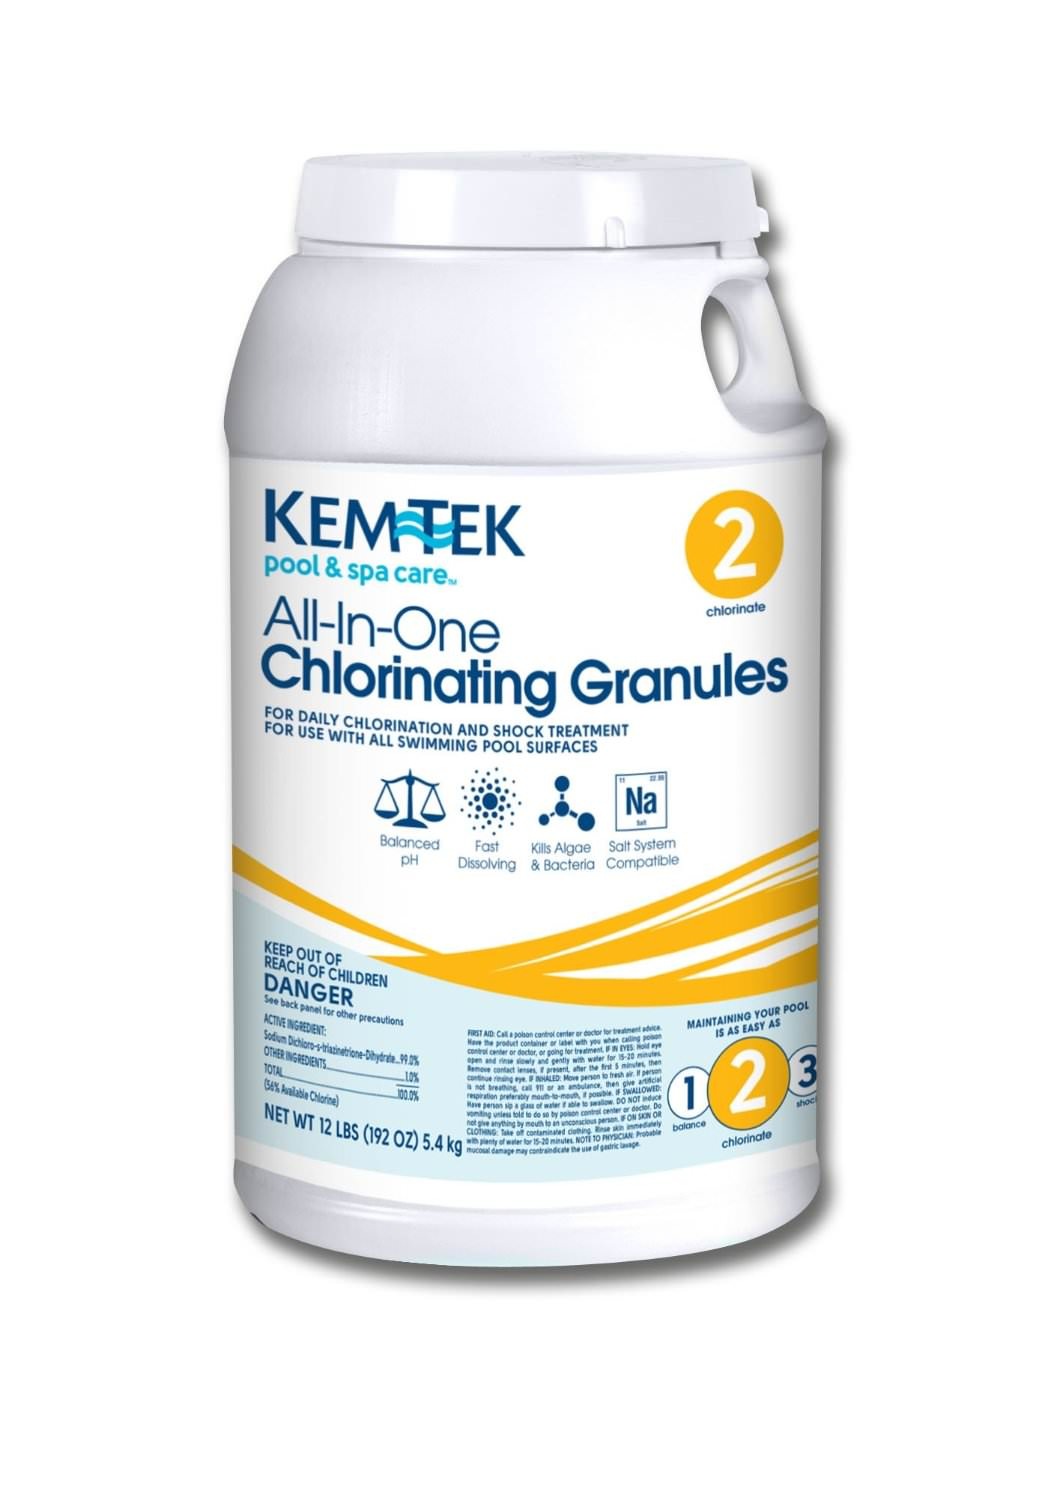 Kem-Tek All In One Chlorinating Granules - Granular Chlorine - 12 lbs